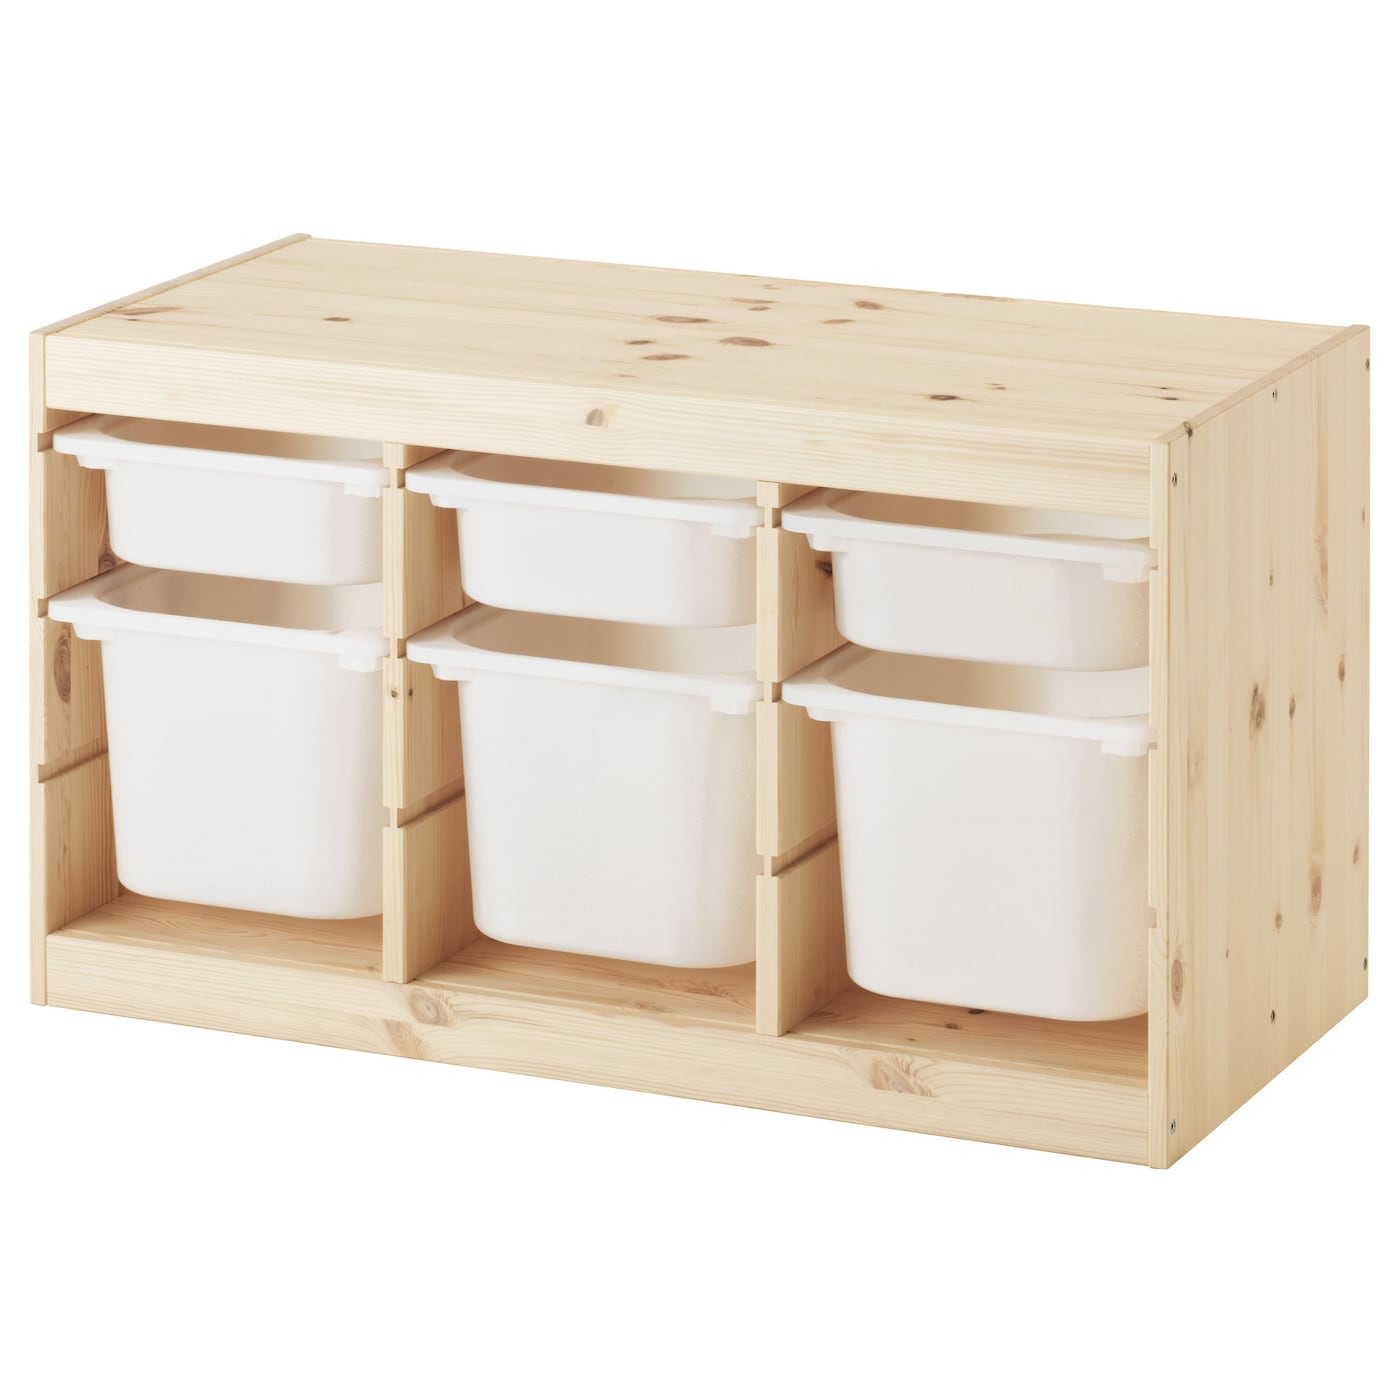 Baby children products ikea - Meuble a cases ikea ...